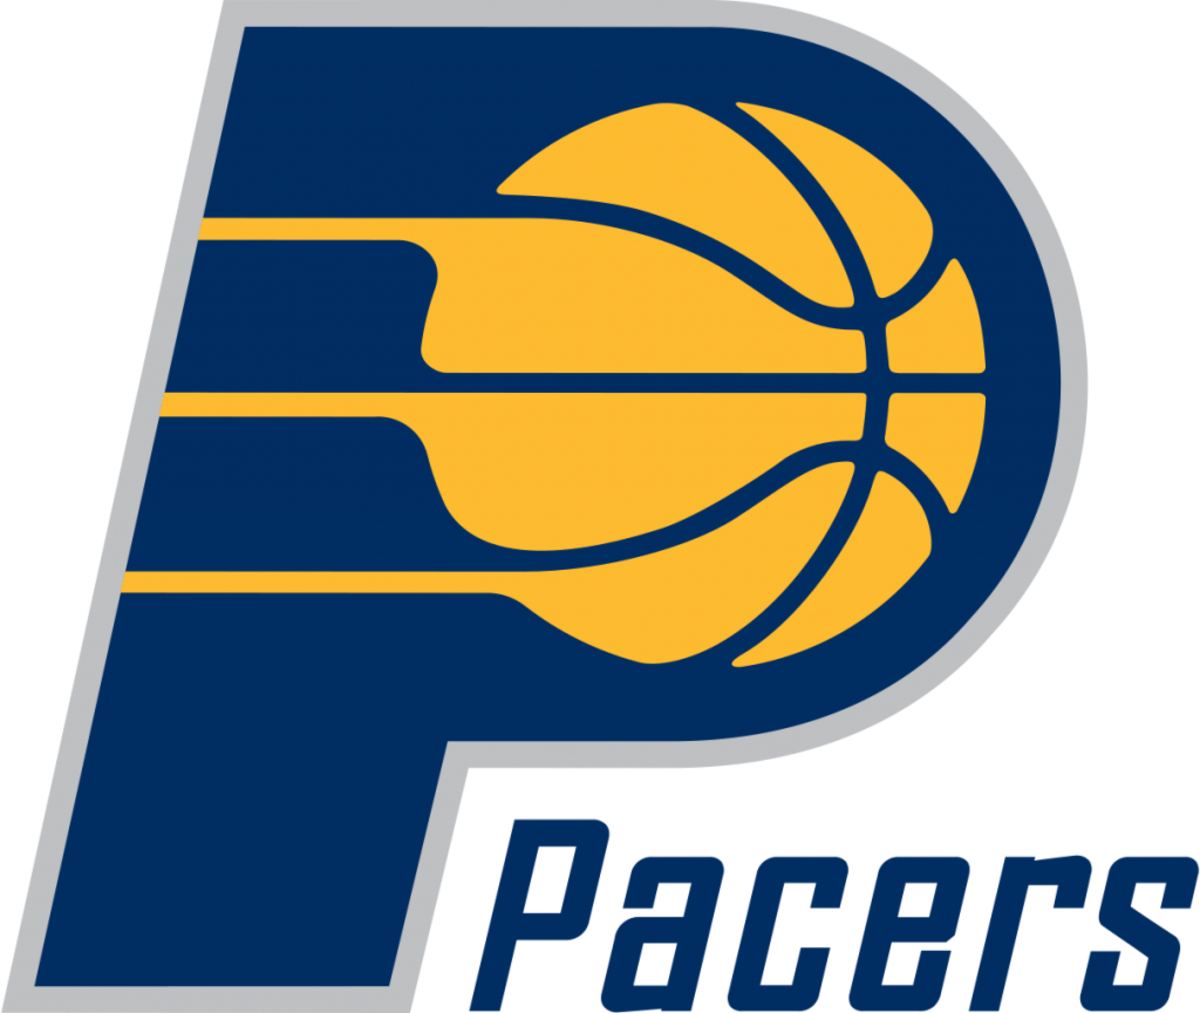 Indiana_Pacers.svg